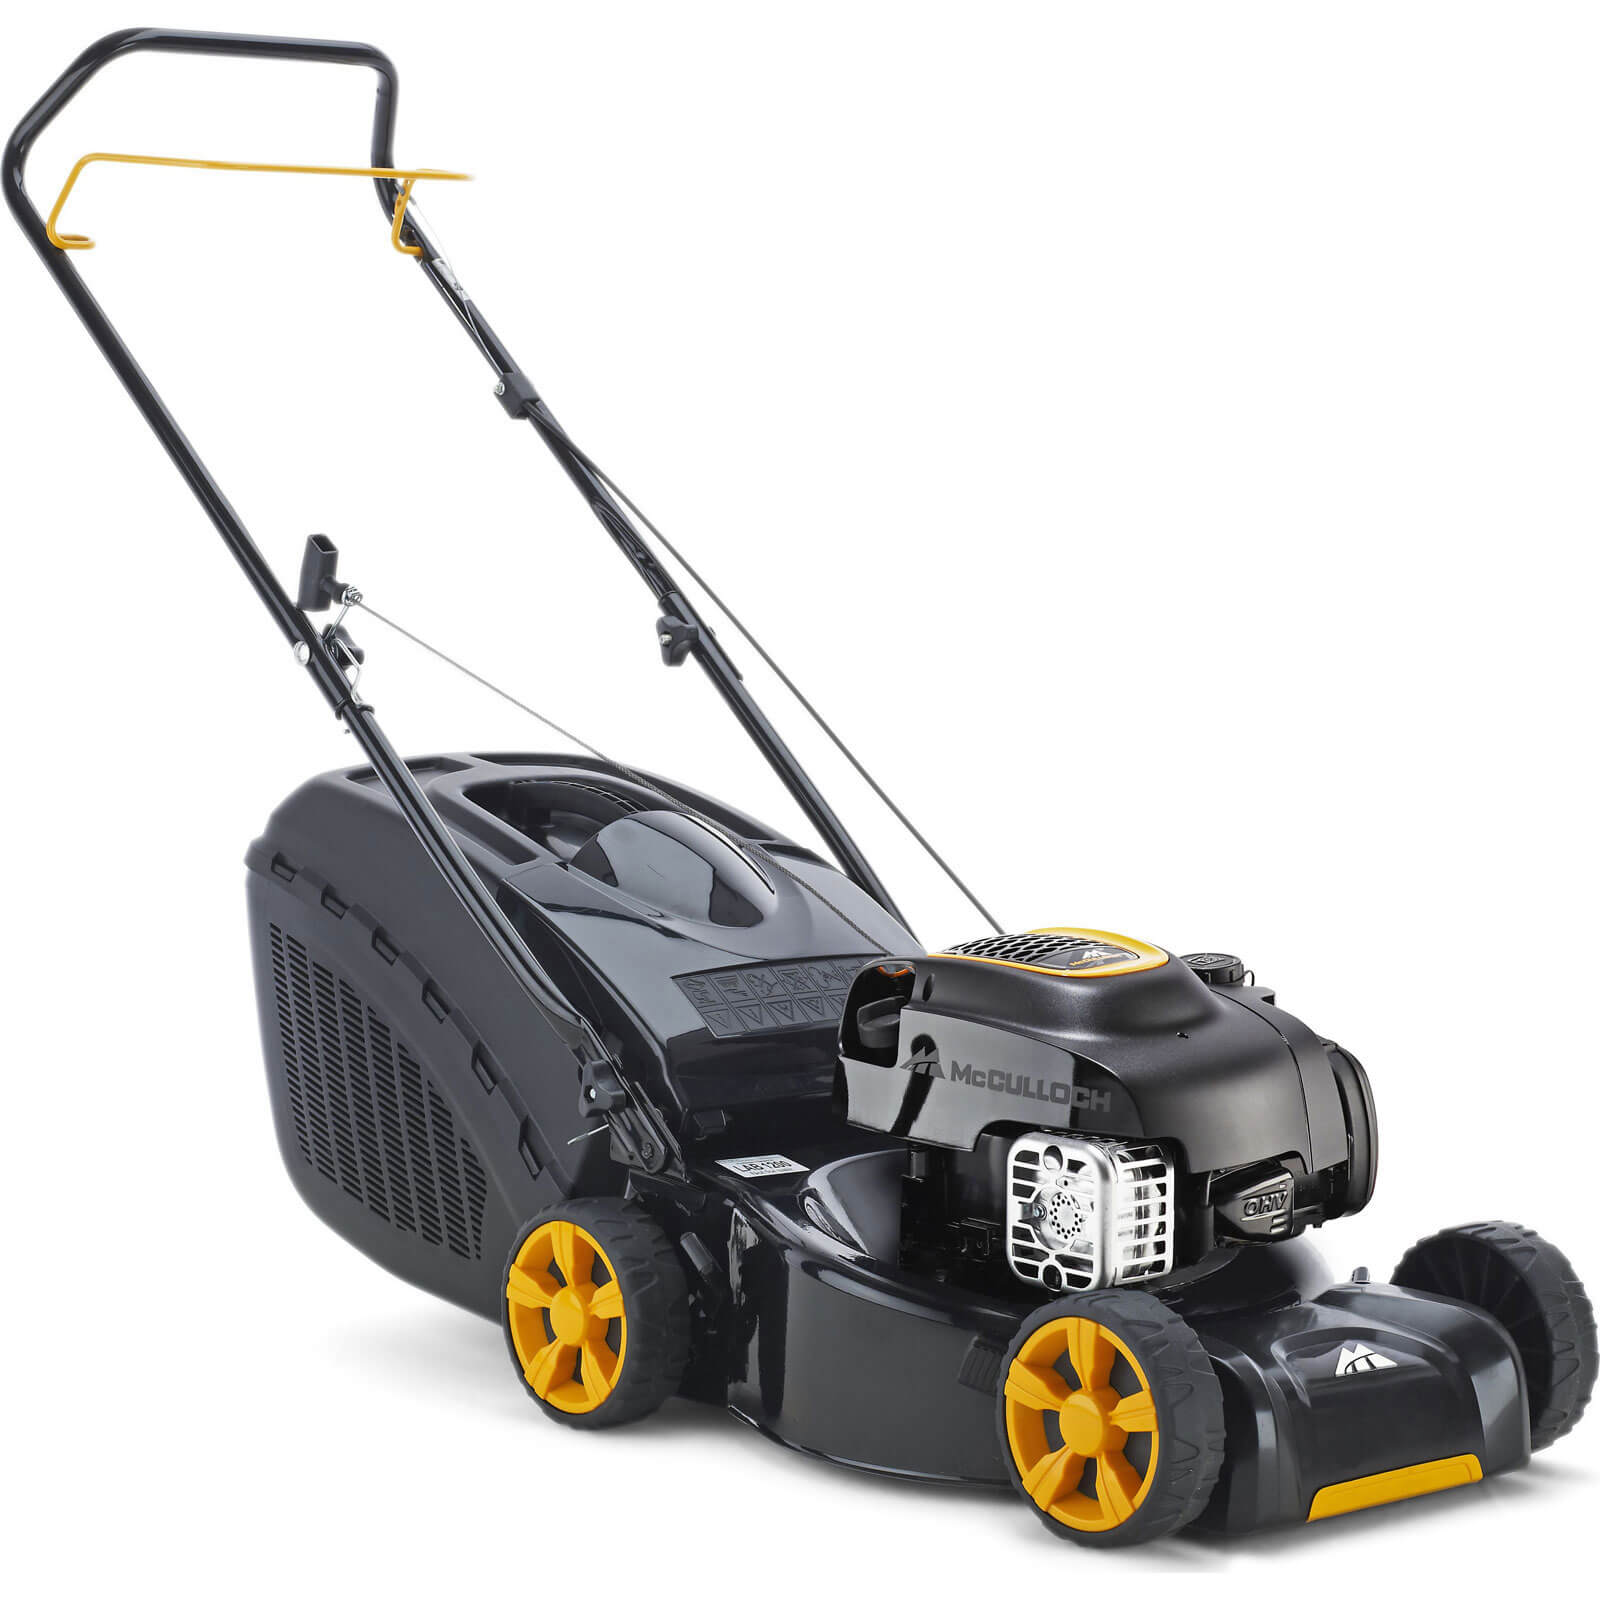 Image of McCulloch M40-125 Push Petrol Rotary Lawnmower 400mm